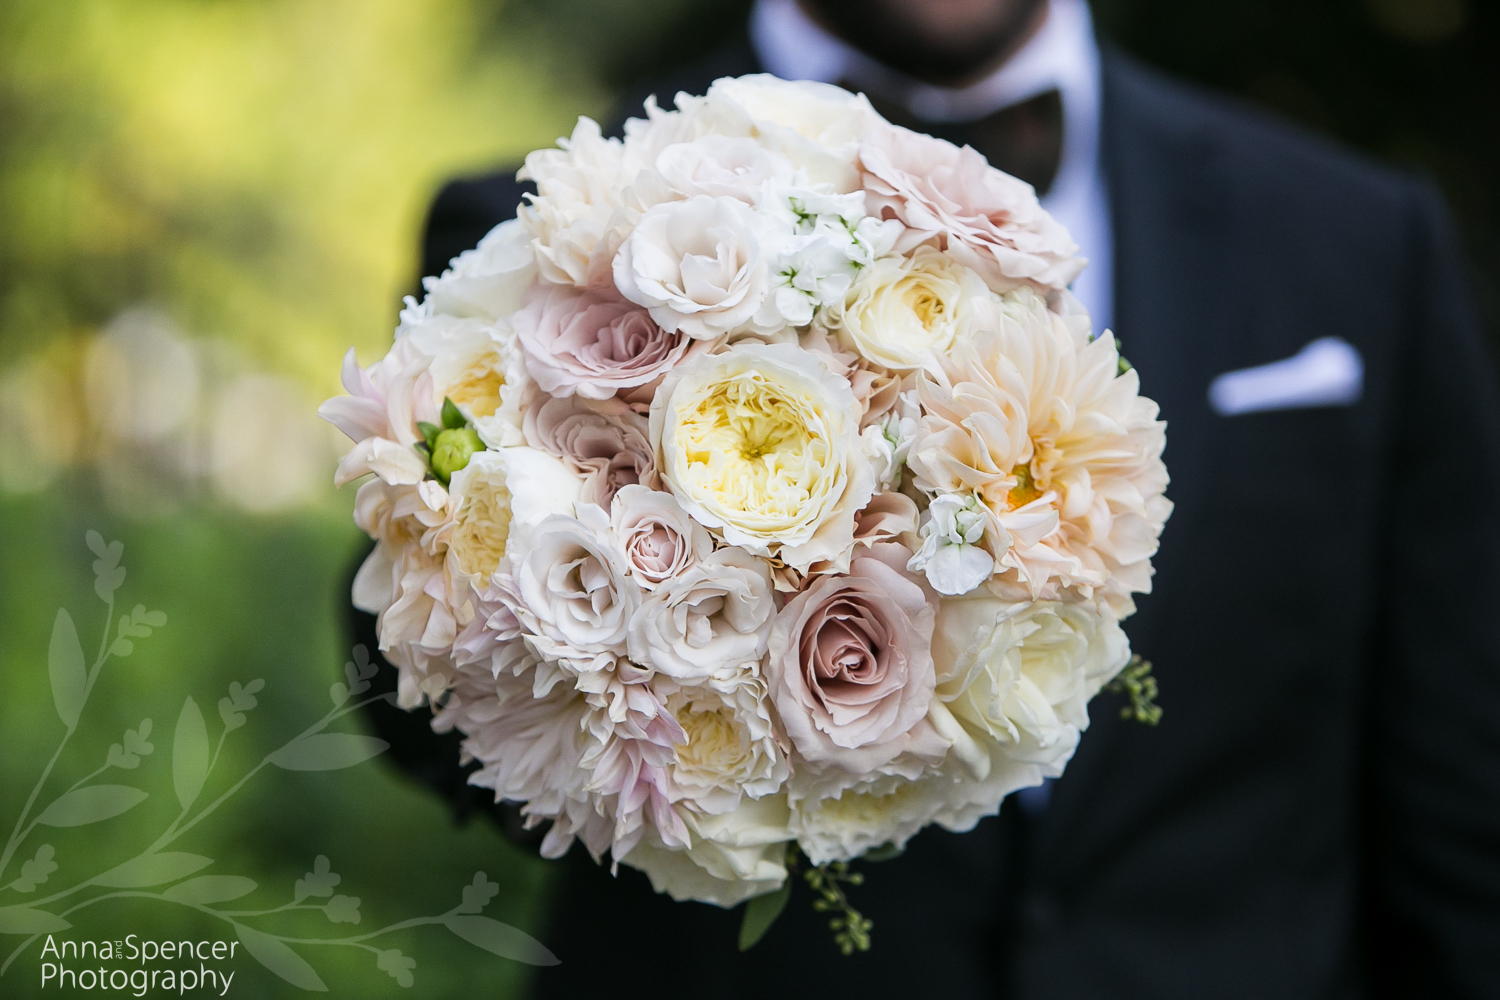 Brides dusty pink rose and white peony bouquet